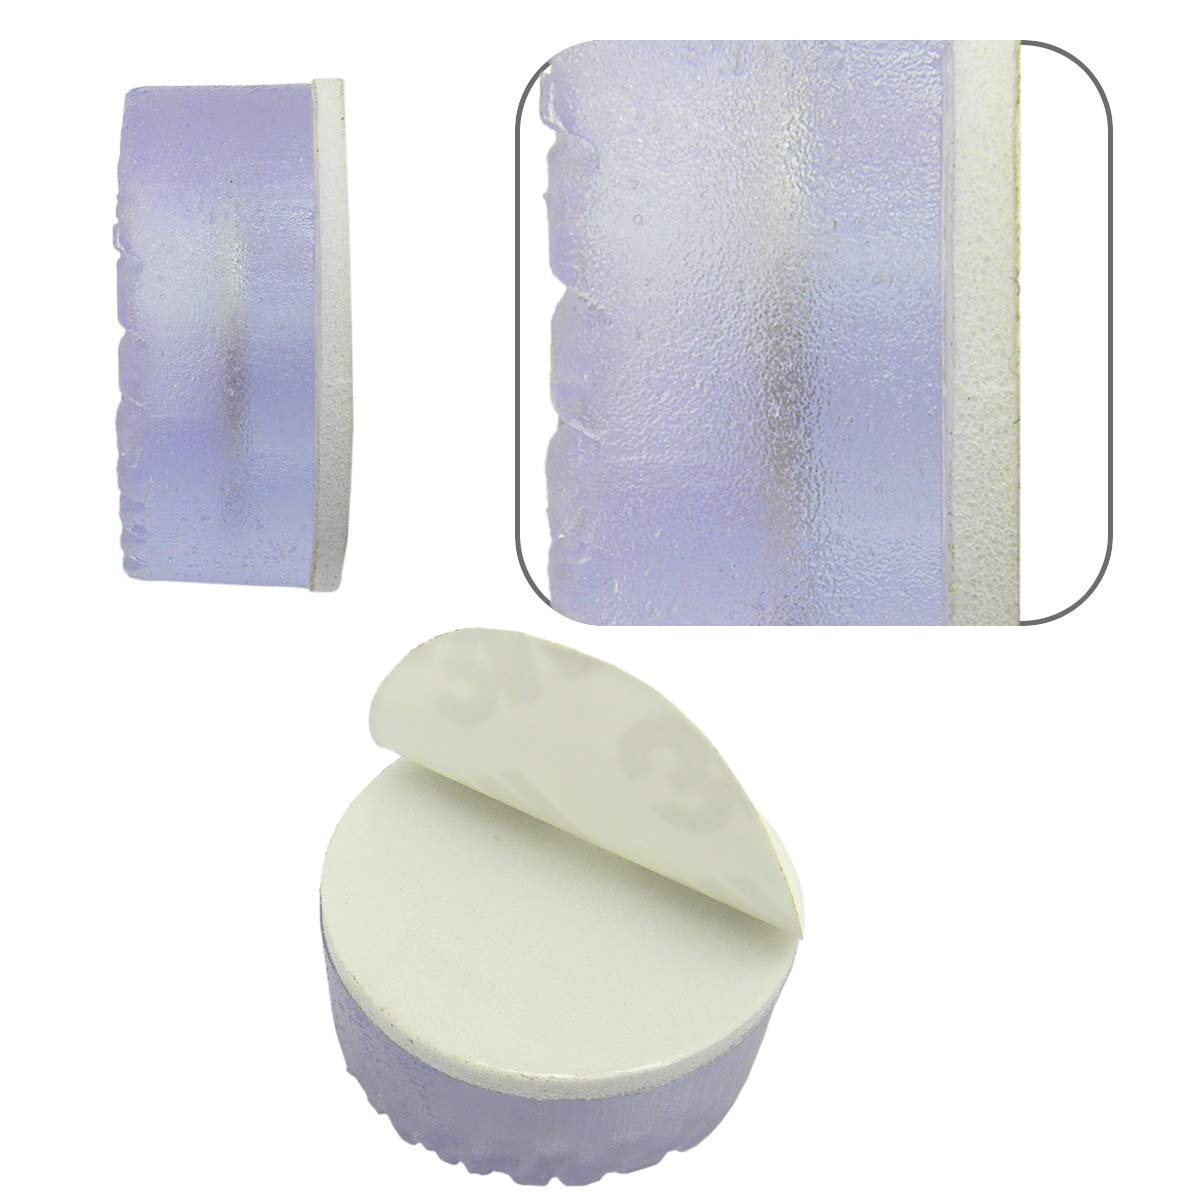 QY 12PCS Transparent Cylindrical Shape Rubber Non Slip Non Skid Feet Pad for Table Desk Chair and Sofa